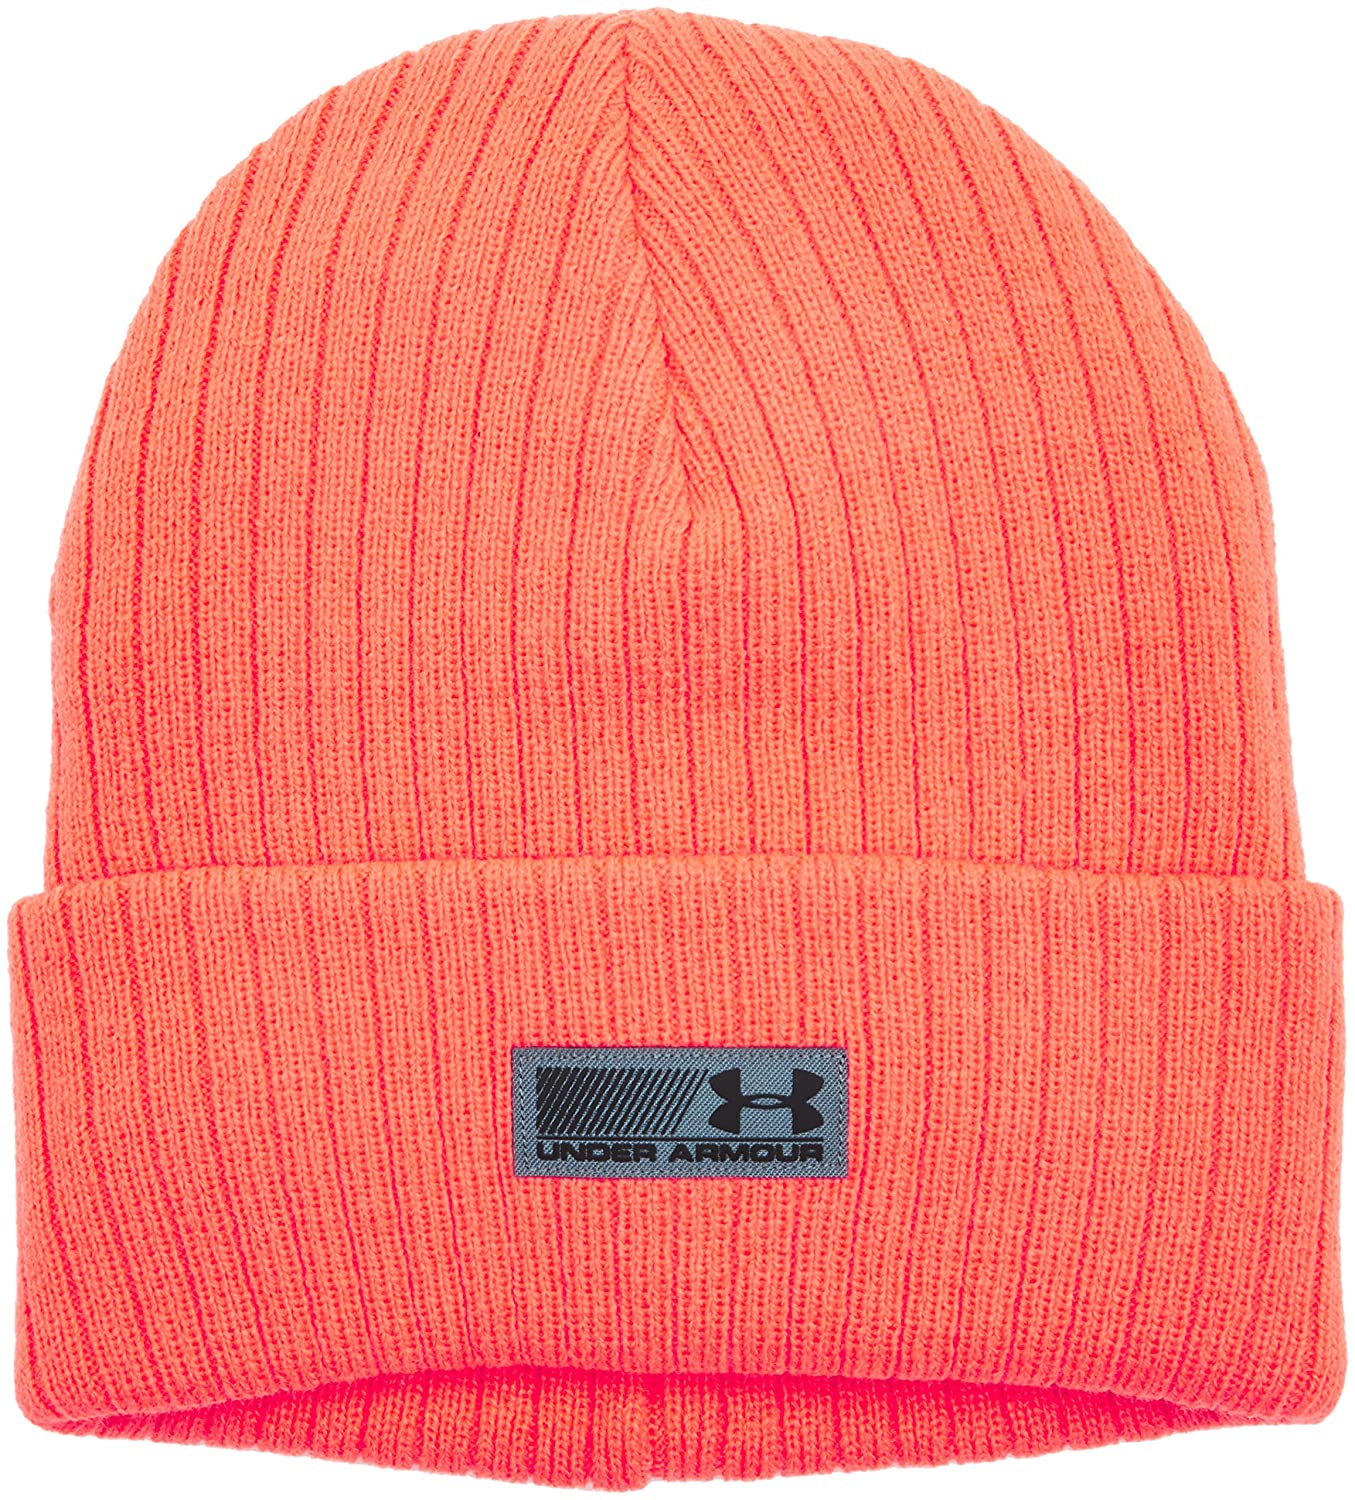 8a351cf8c9cb97 Men's Under Armour Truck Stop Beanie: Amazon.ca: Sports & Outdoors